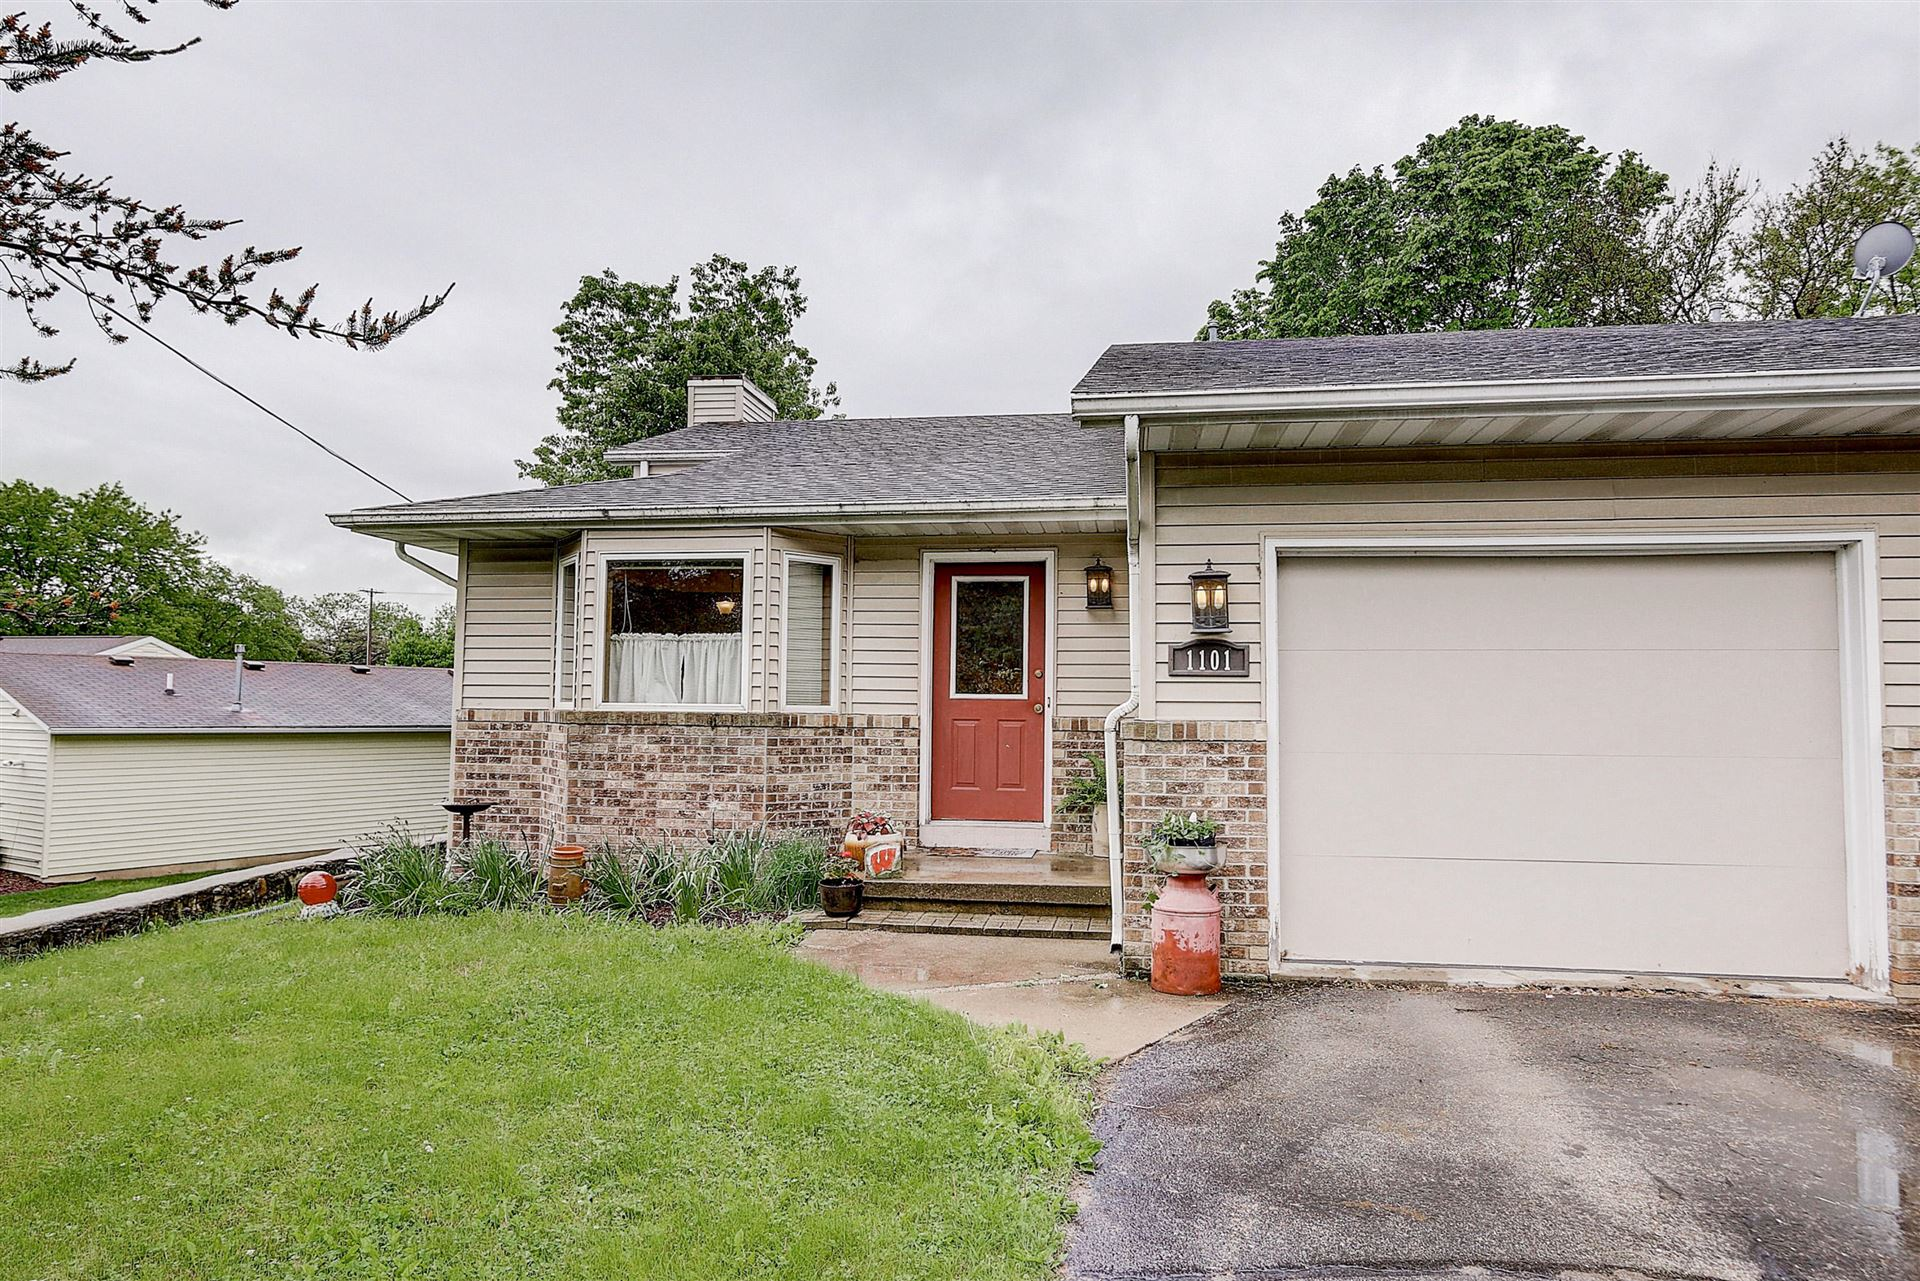 1101 Caswell St #B, Fort Atkinson, WI 53538 - #: 1691636